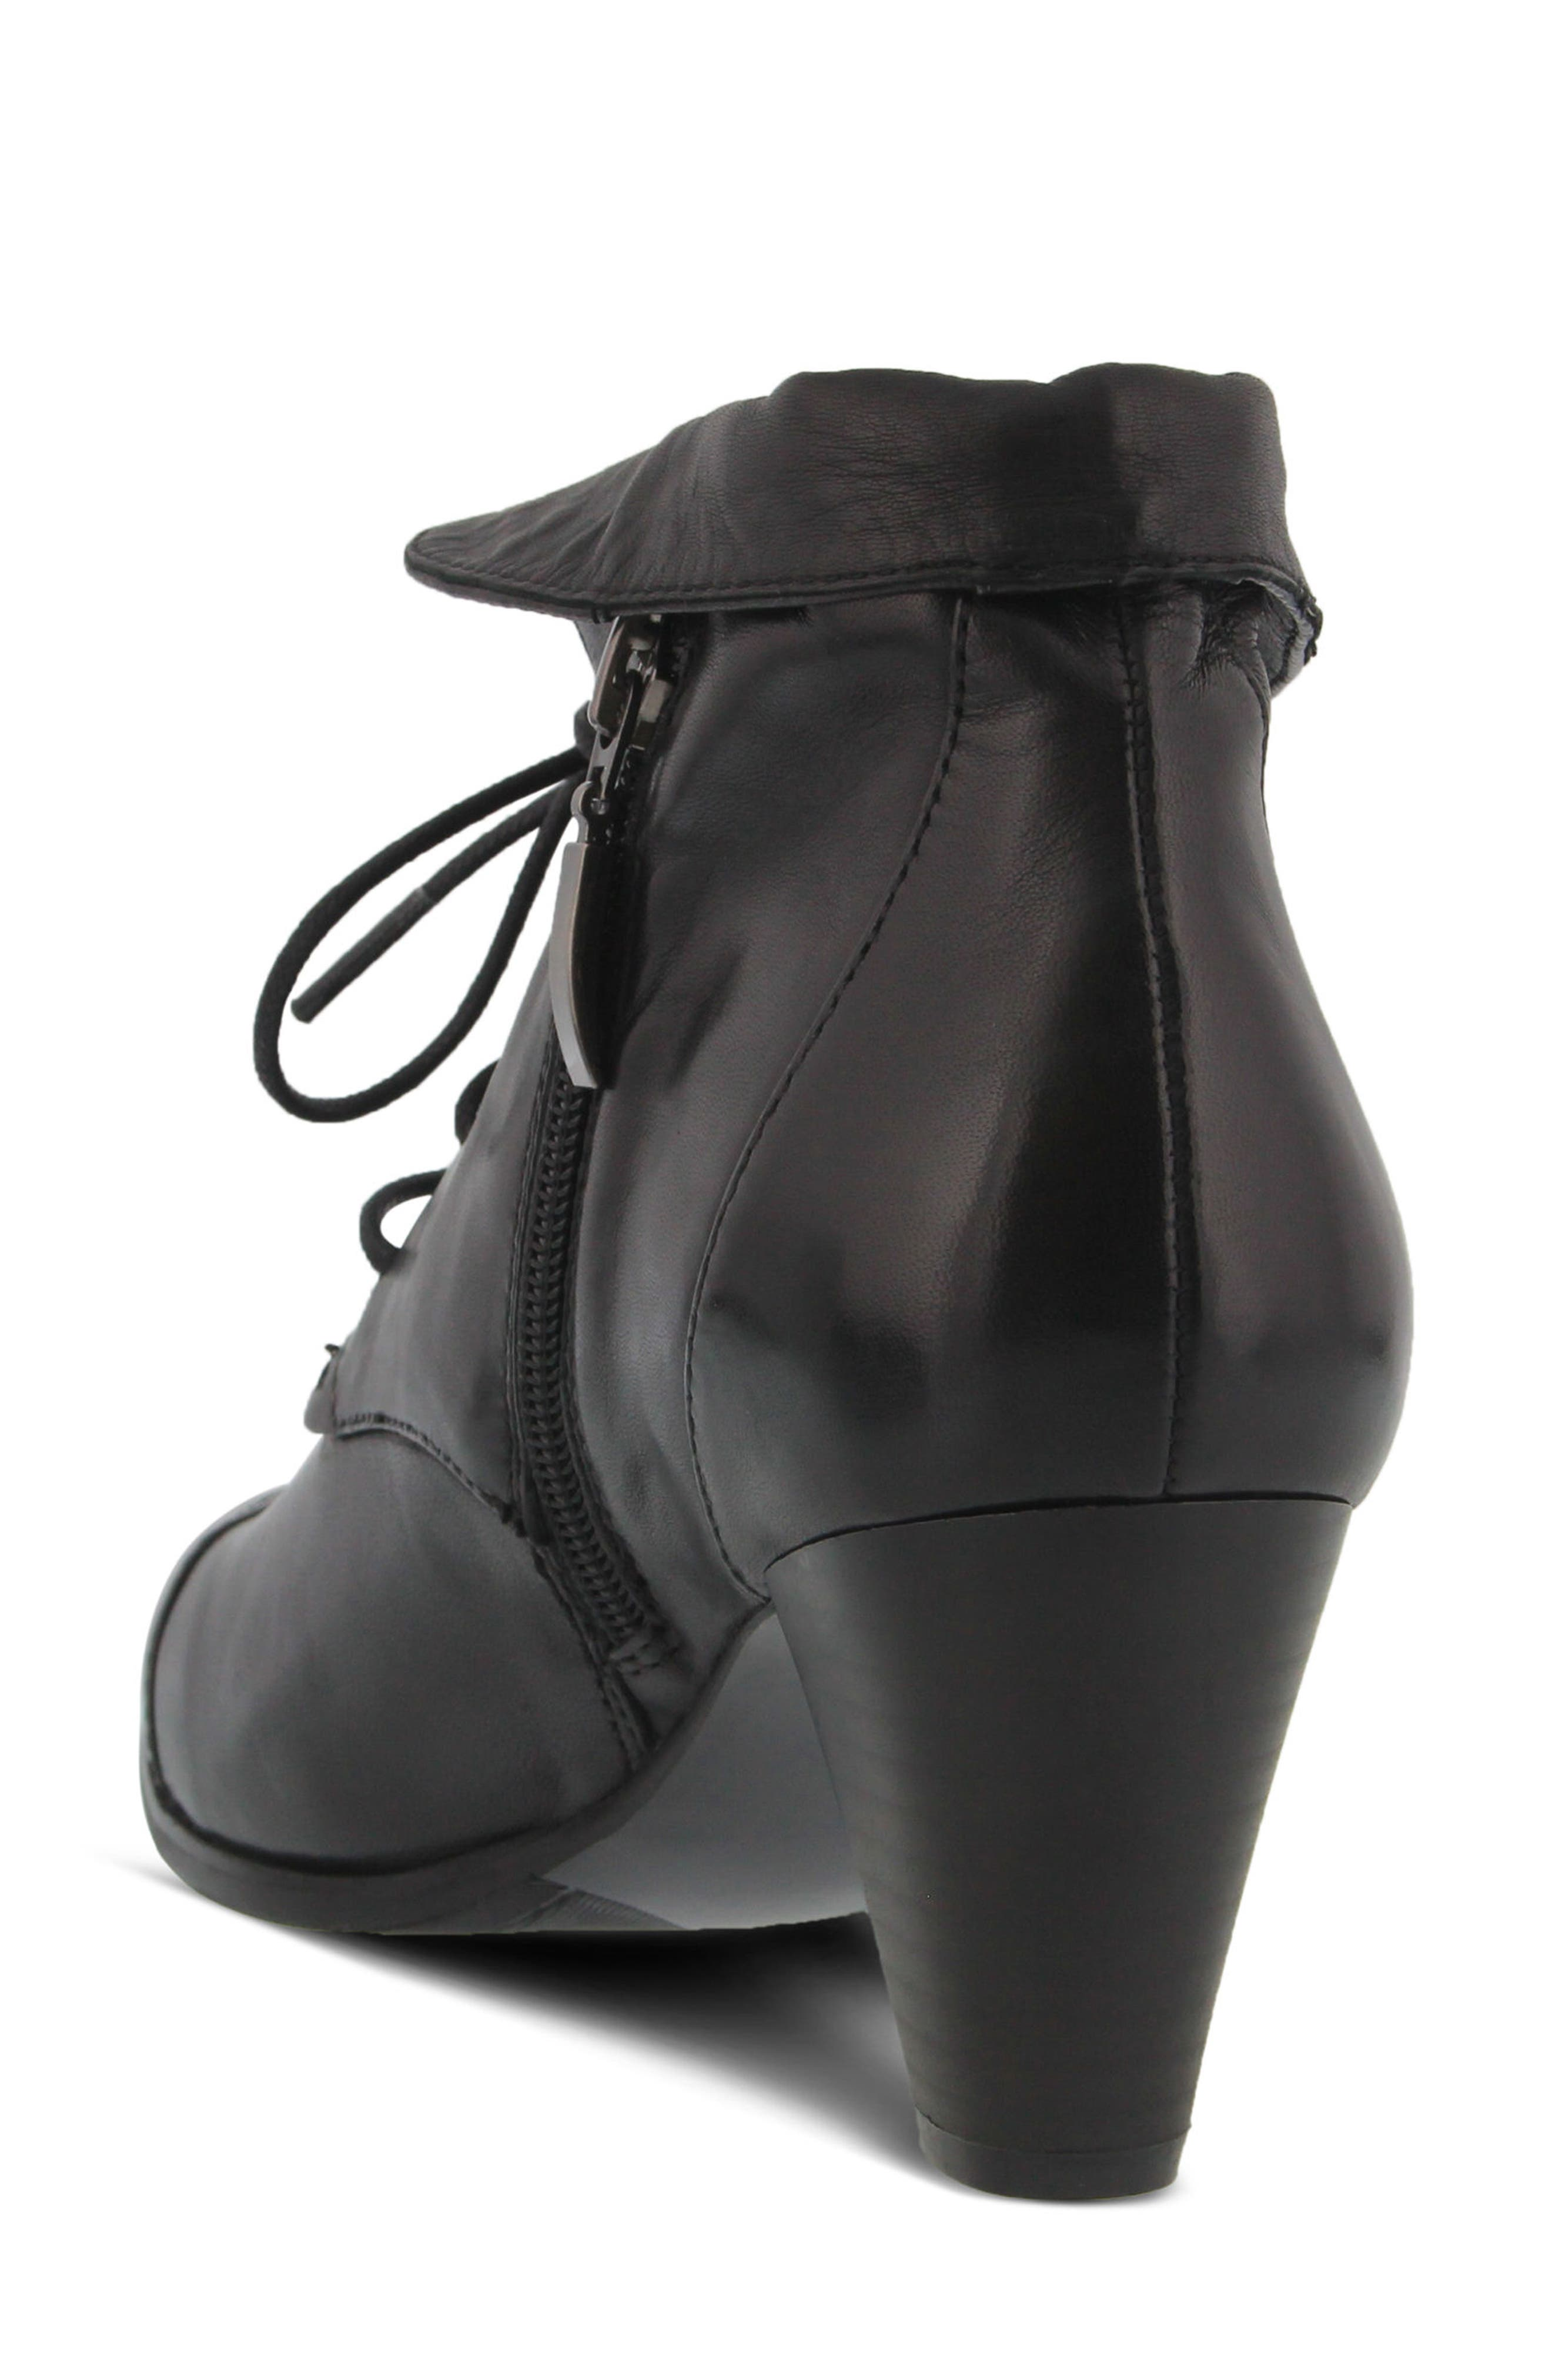 Conquer Foldover Cuff Bootie,                             Alternate thumbnail 2, color,                             Black Leather